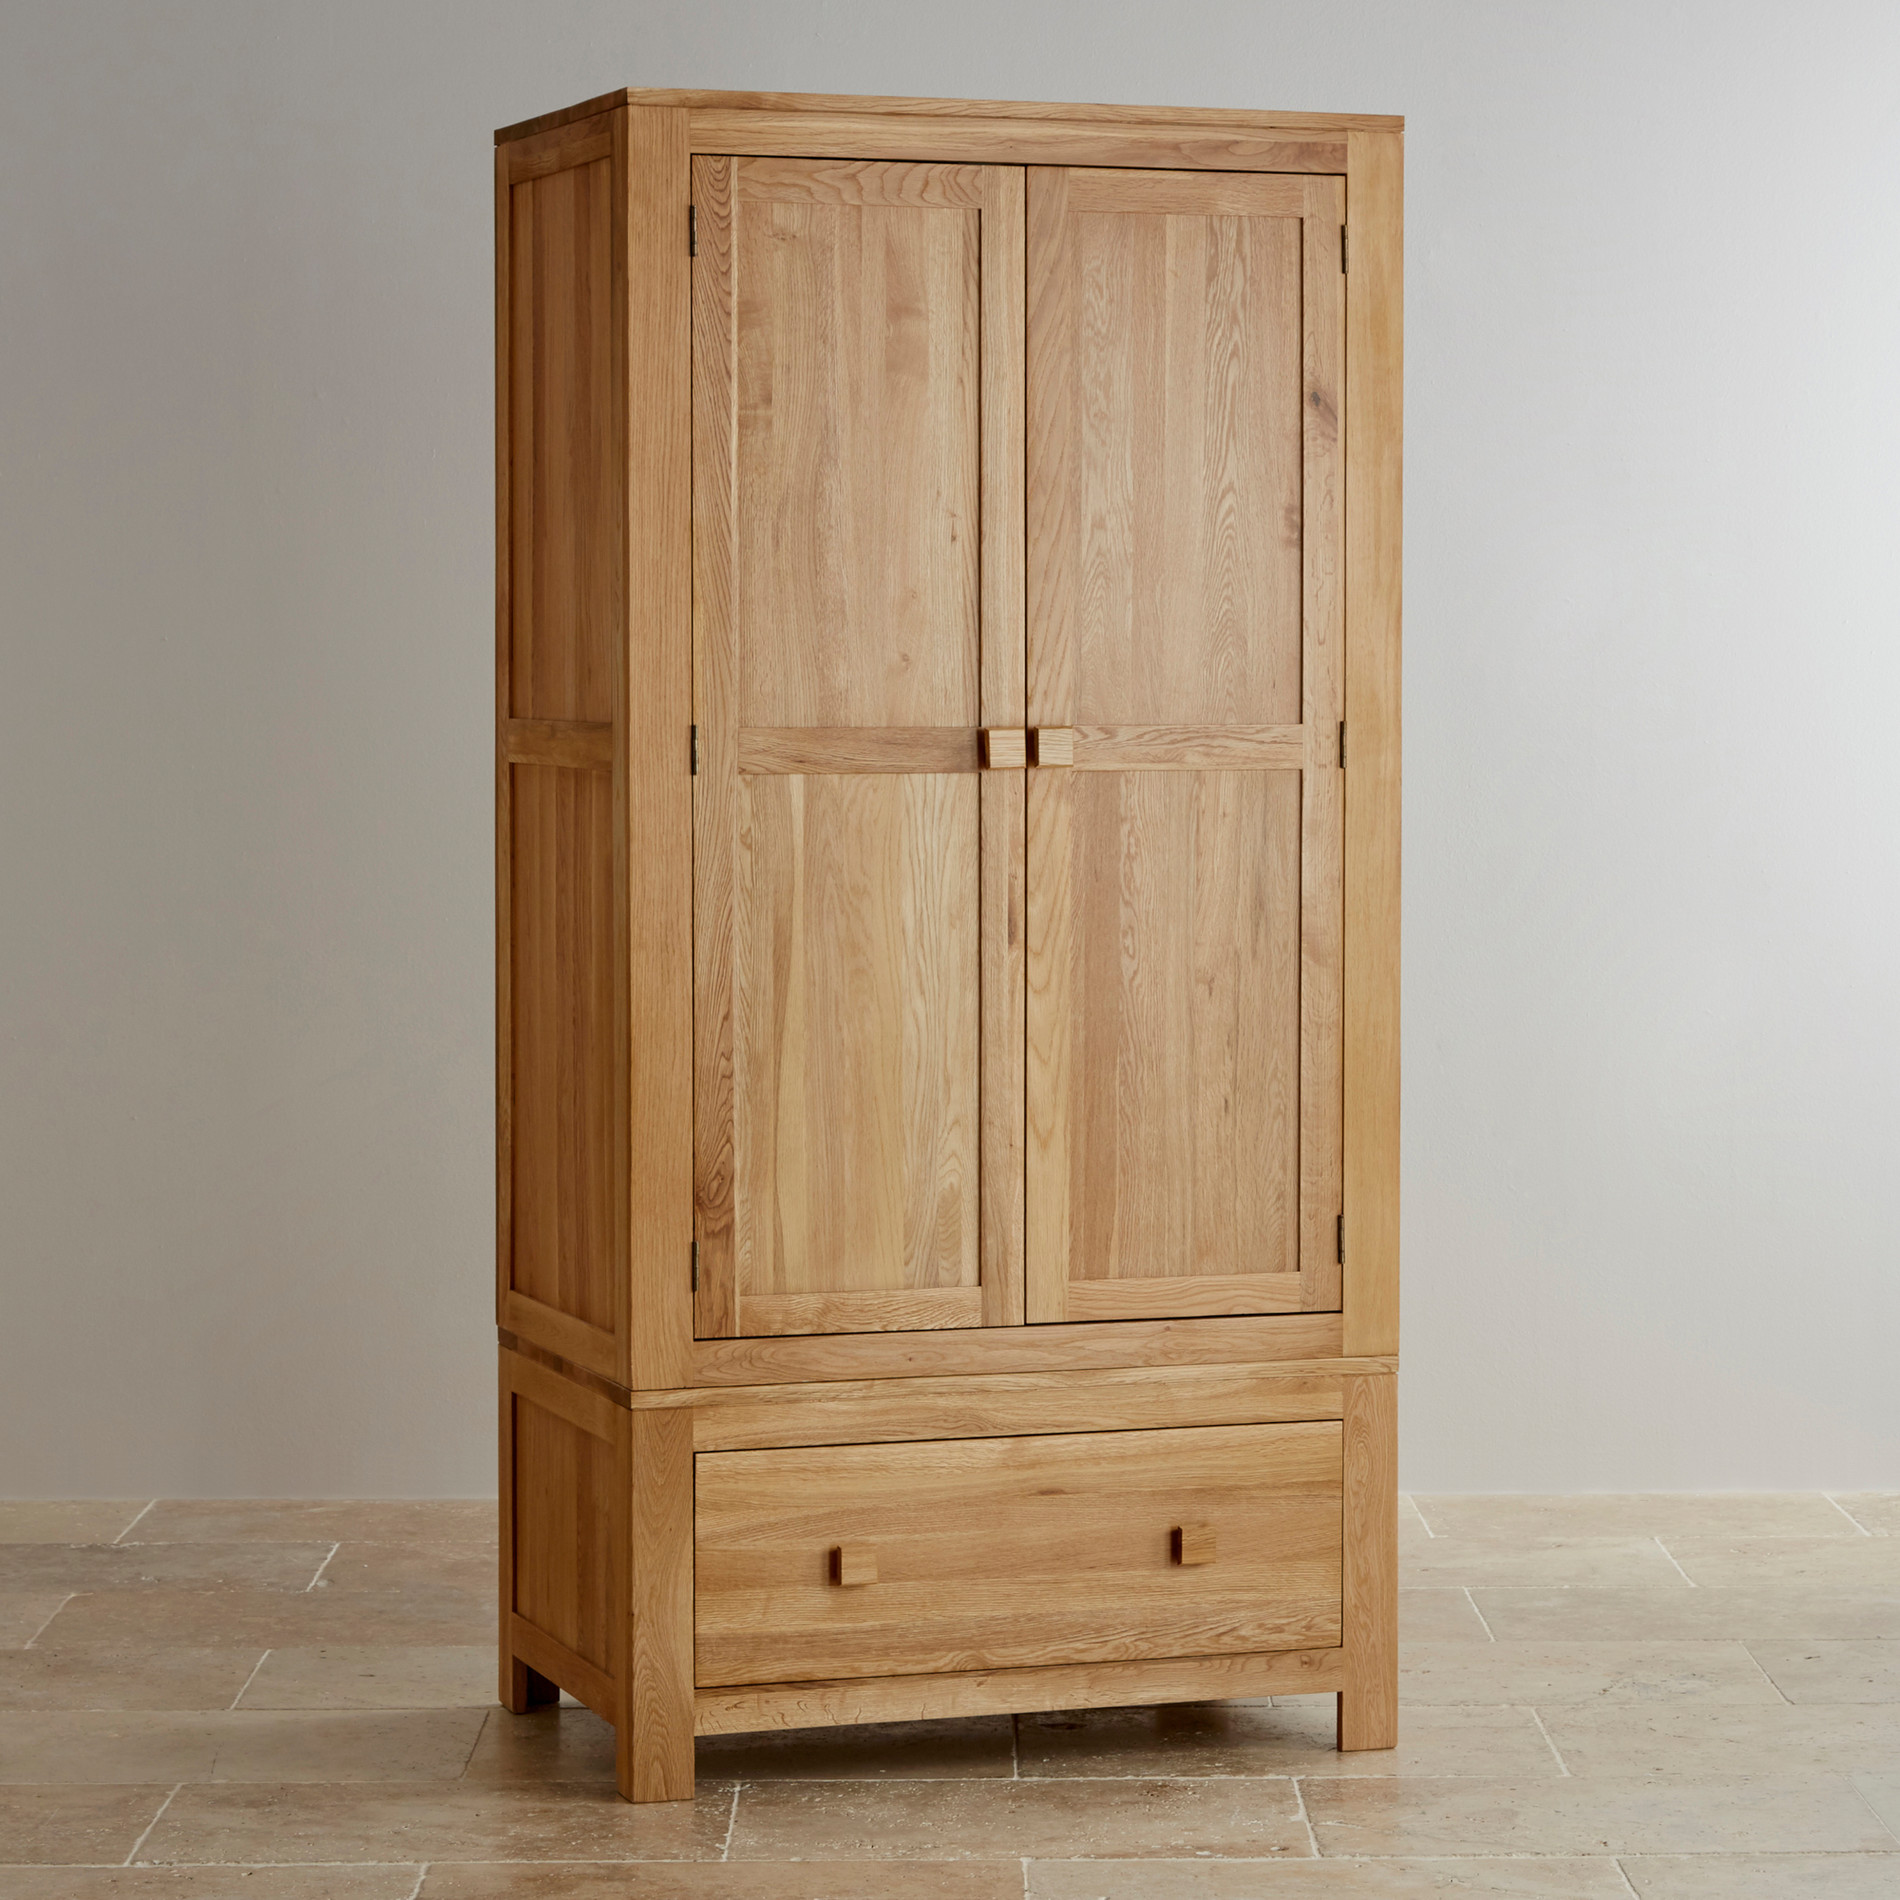 oakdale natural solid oak double wardrobe bedroom furniture. Black Bedroom Furniture Sets. Home Design Ideas